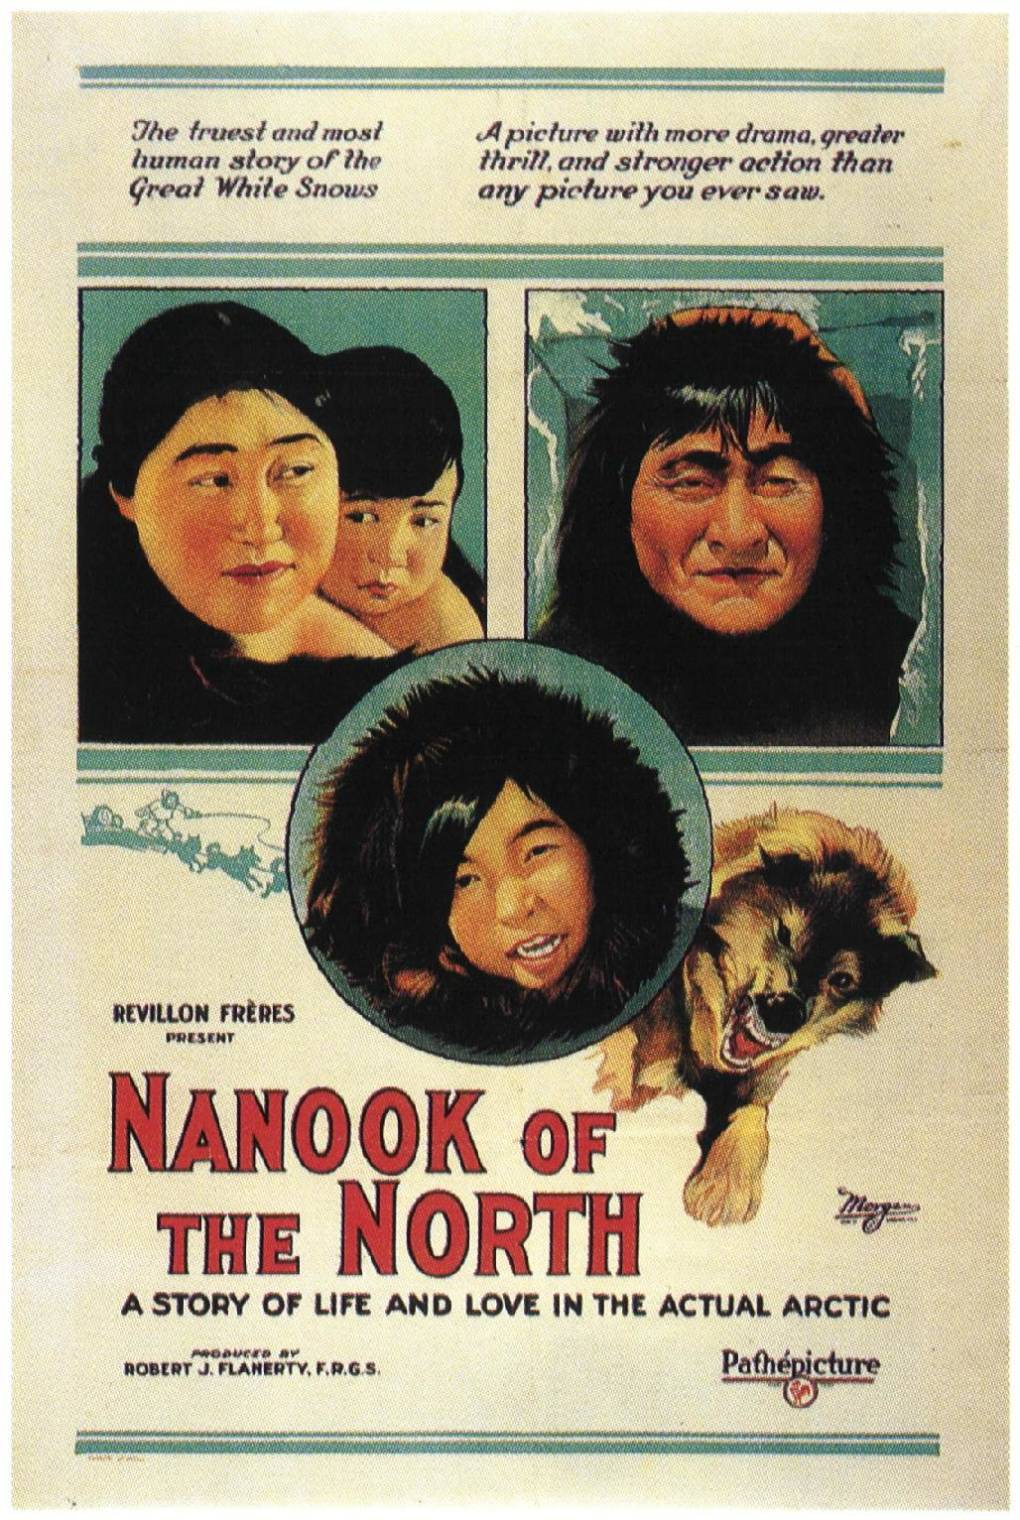 Promotional poster for 'Nanook of the North,' directed by Robert J. Flaherty, 1922.